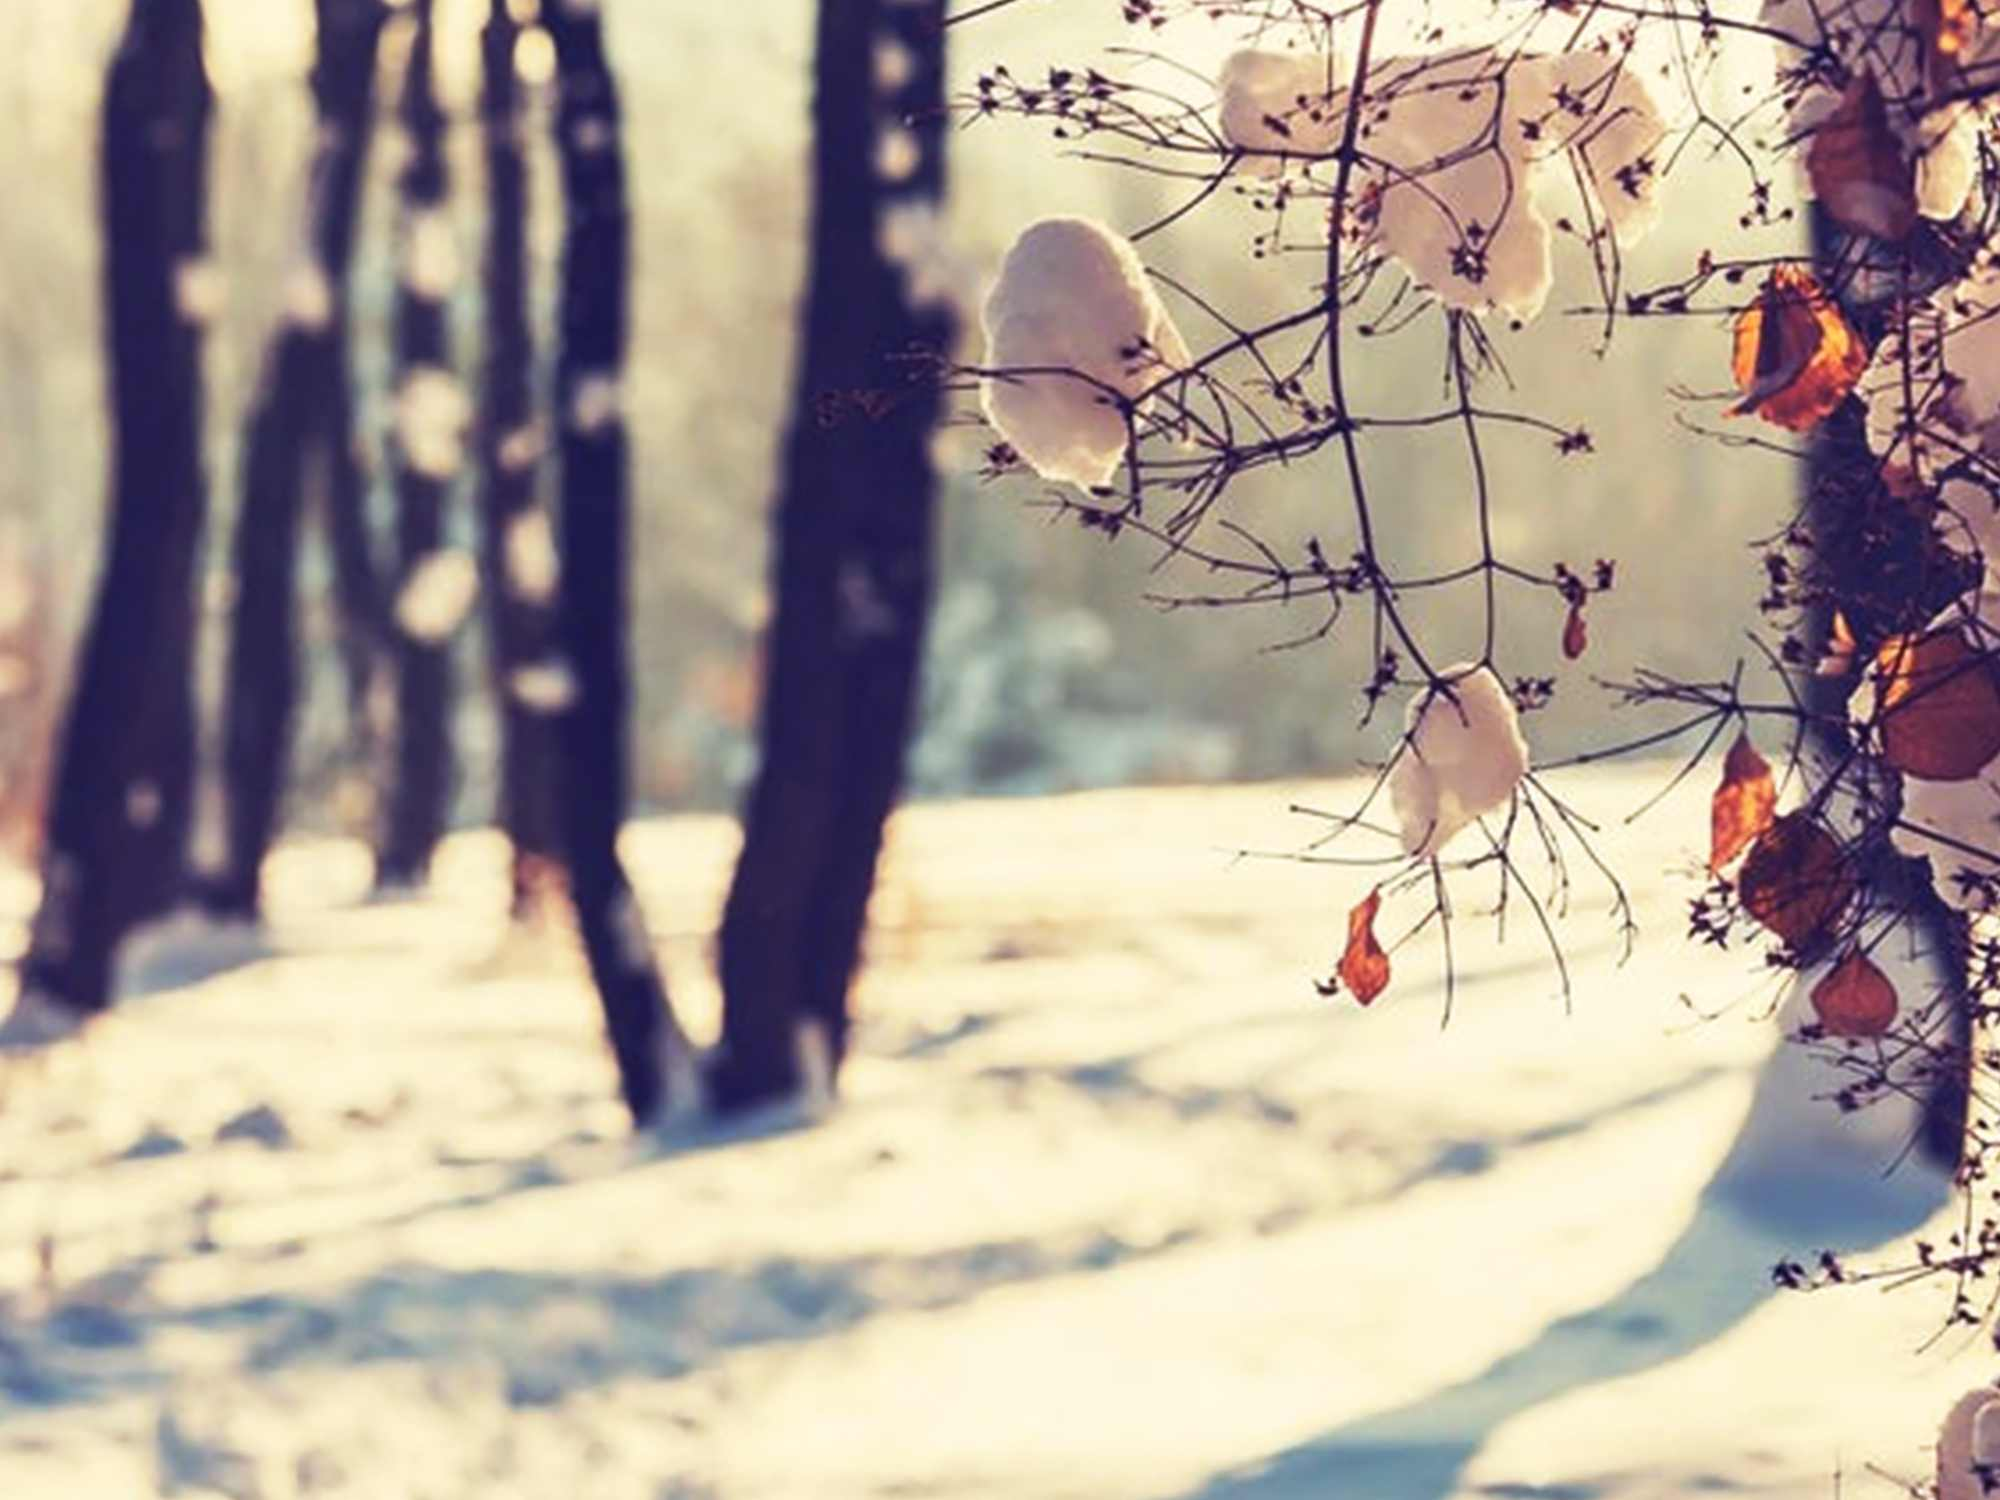 The Most Awaited Winter Season is Here!